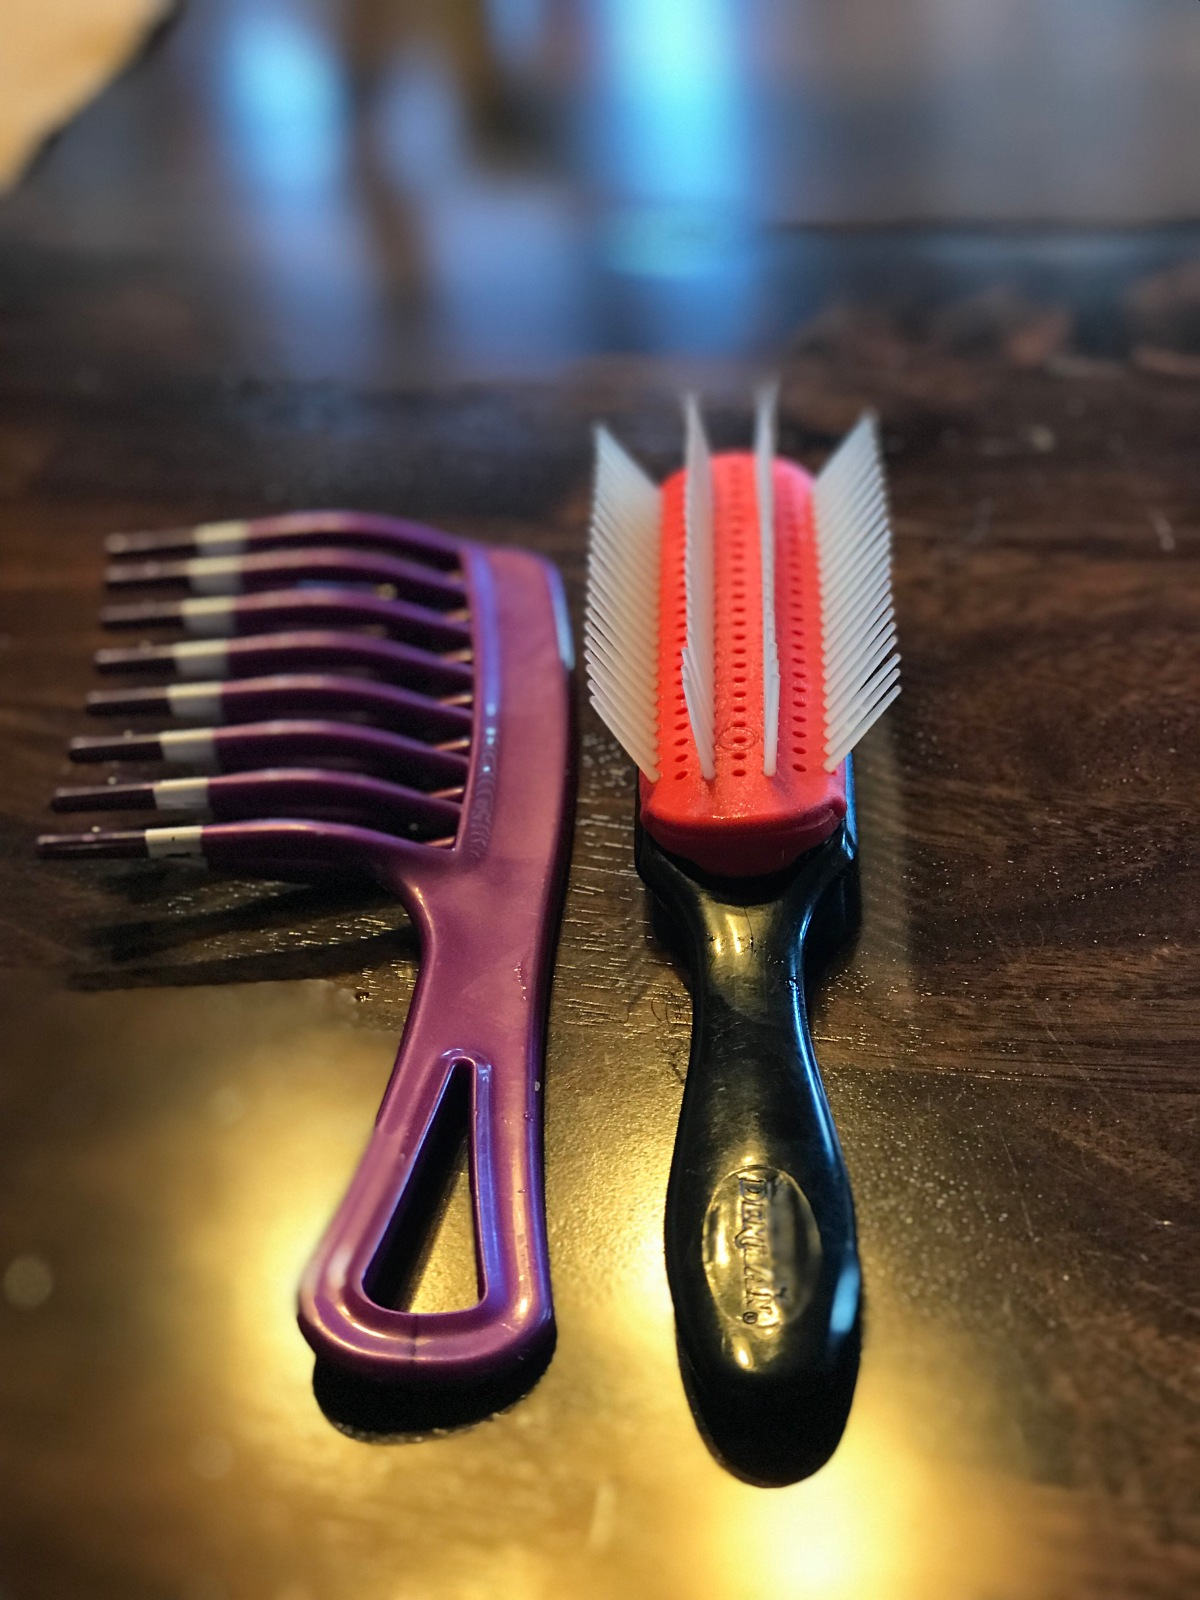 My Denman Brush and Wide-tooth Comb